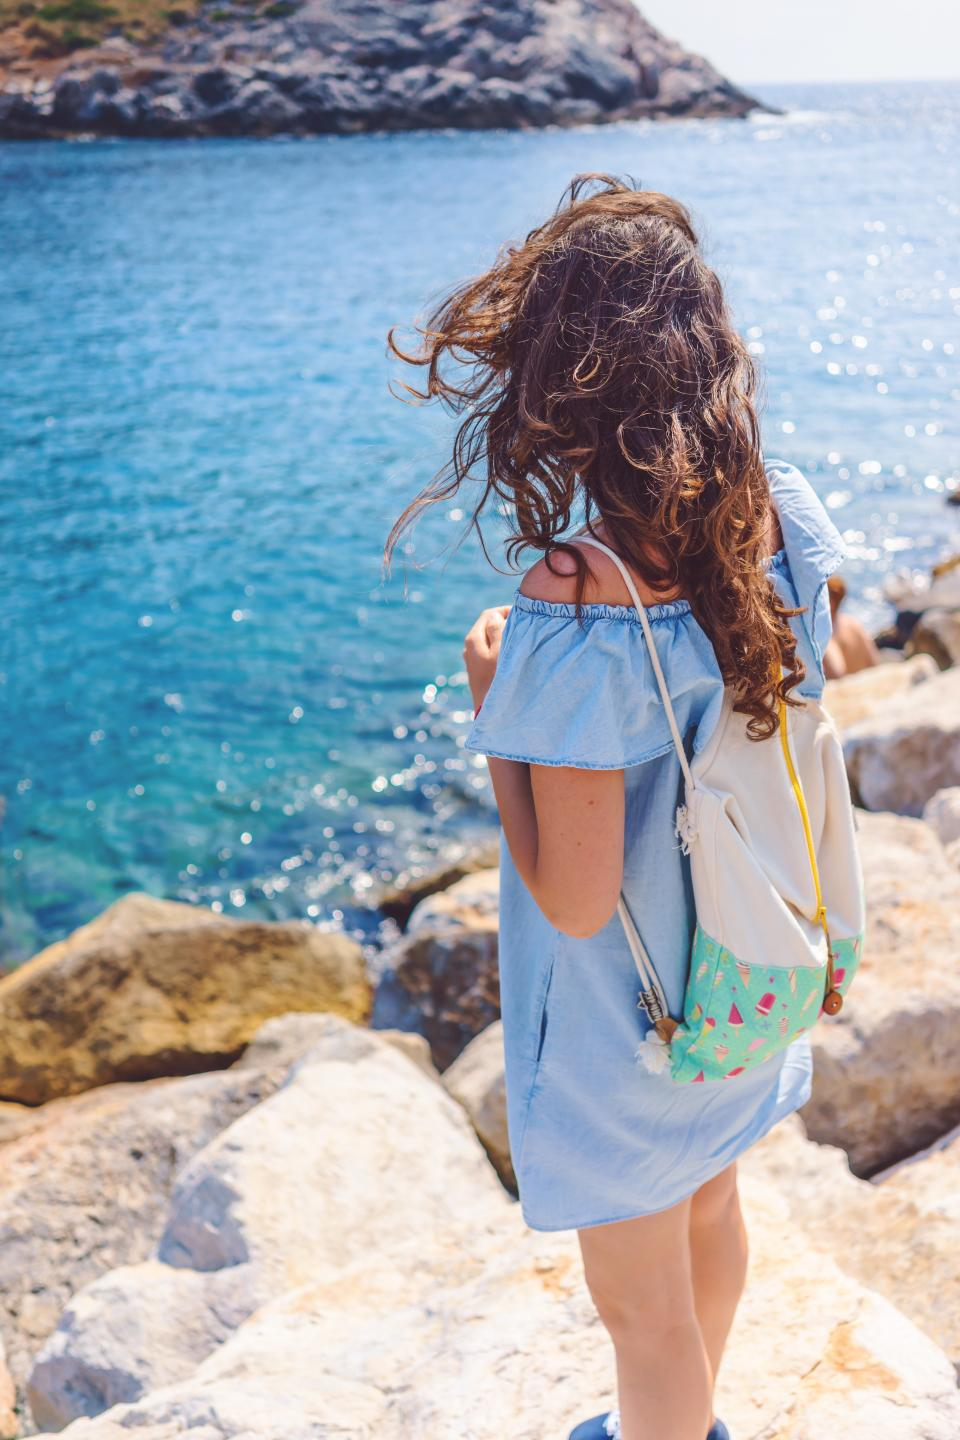 coast ocean sea water nature rocks blue girl dress bag hair wind people